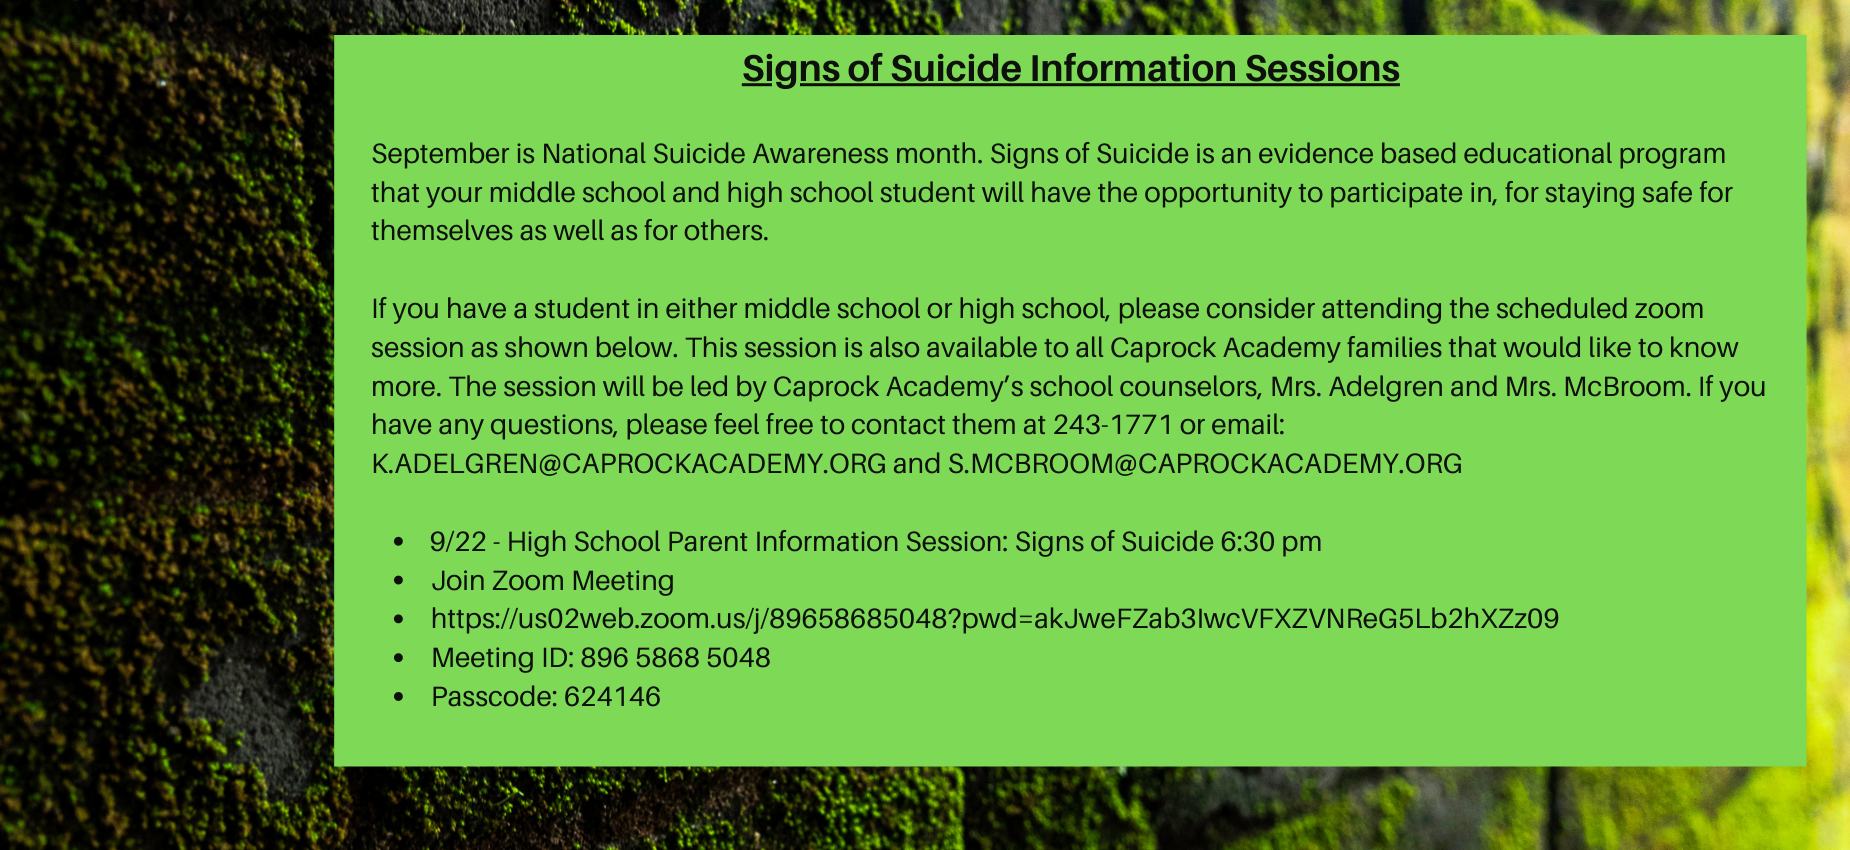 Signs of Suicide Information Sessions